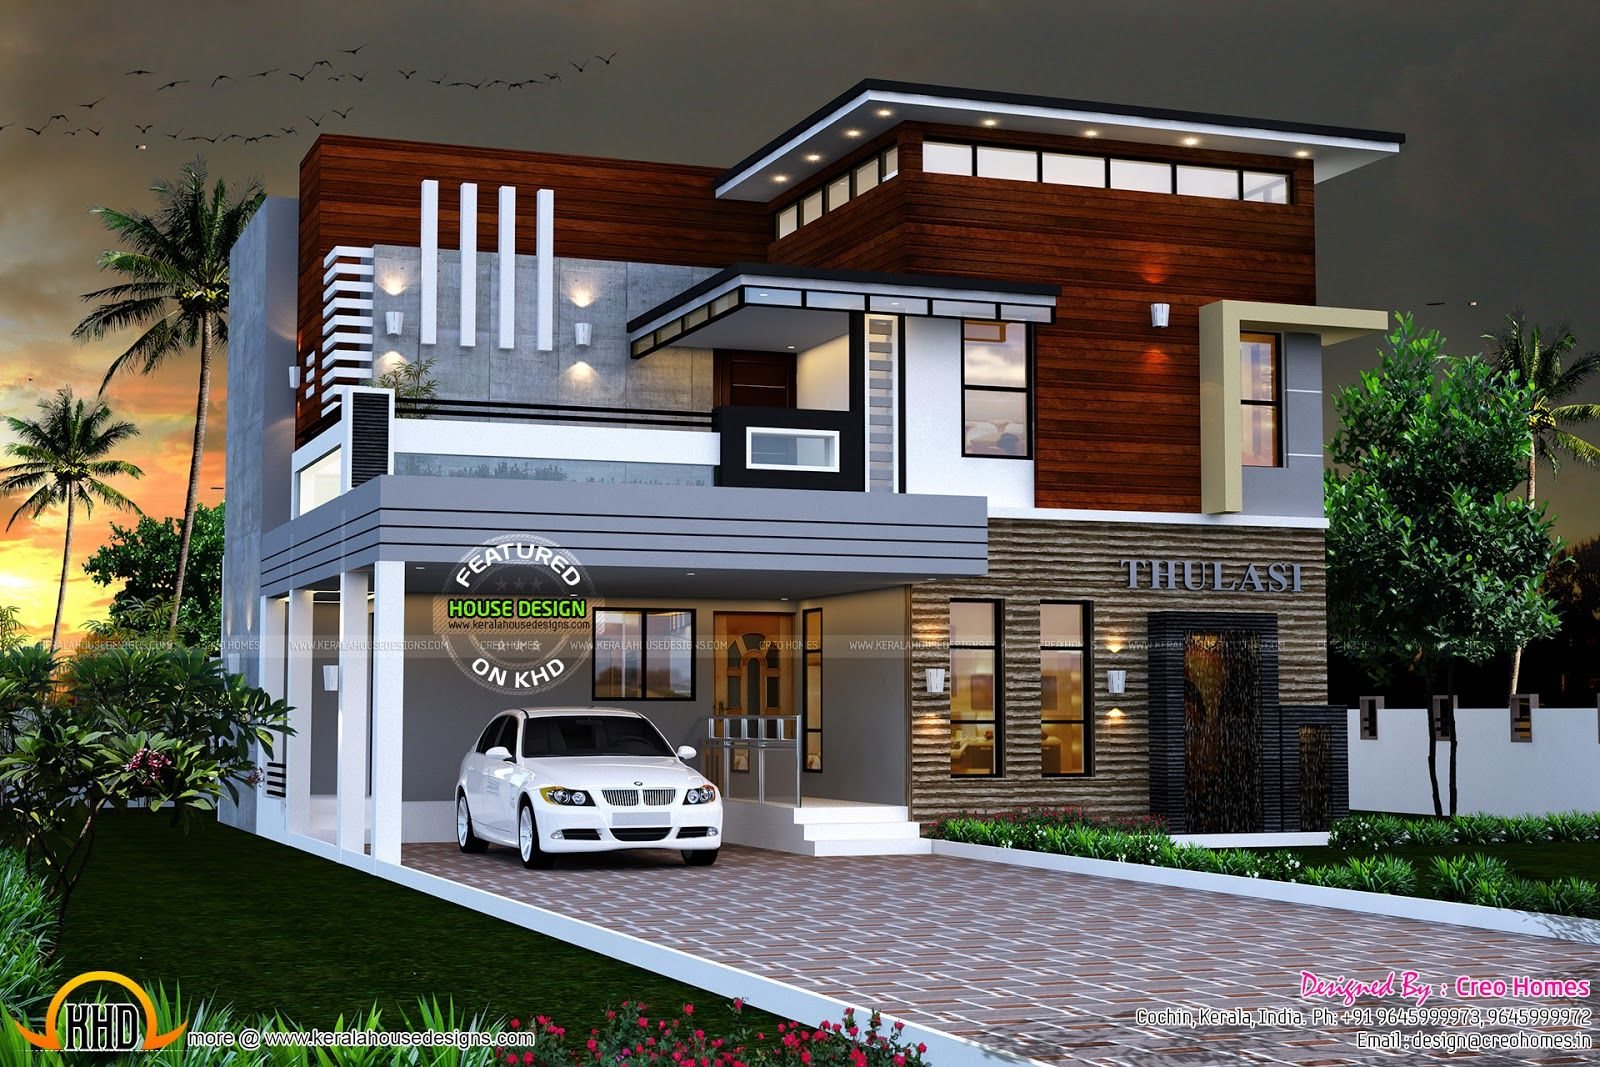 Eterior design modern small house architecture building for Small indian house plans modern